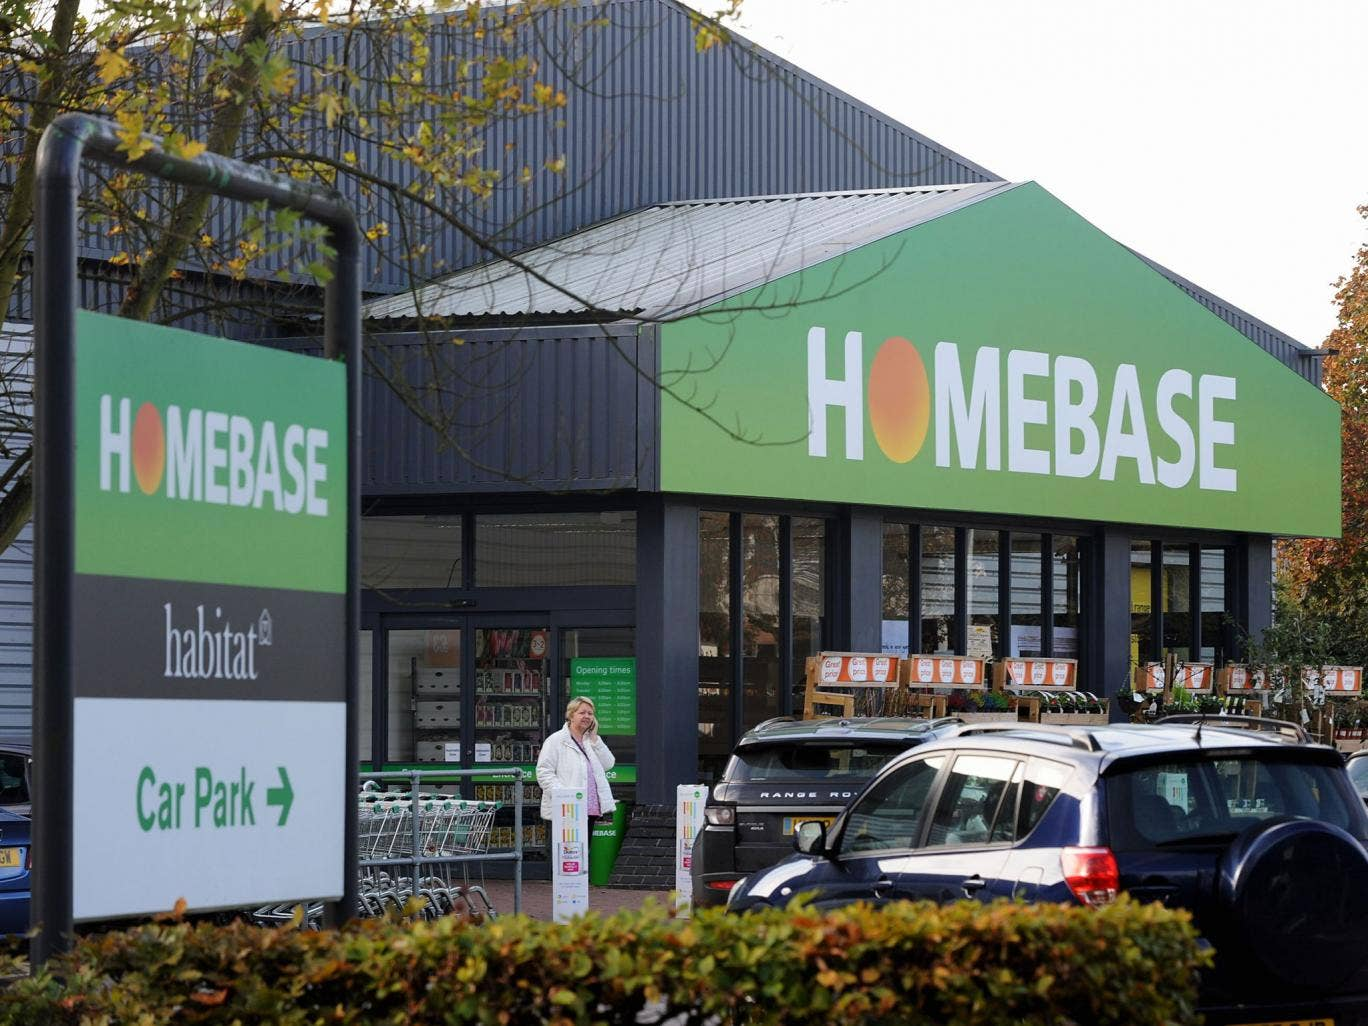 Homebase gift card(s) can be used for full or partial payment from participating Homebase stores and should be presented at the point of sale.